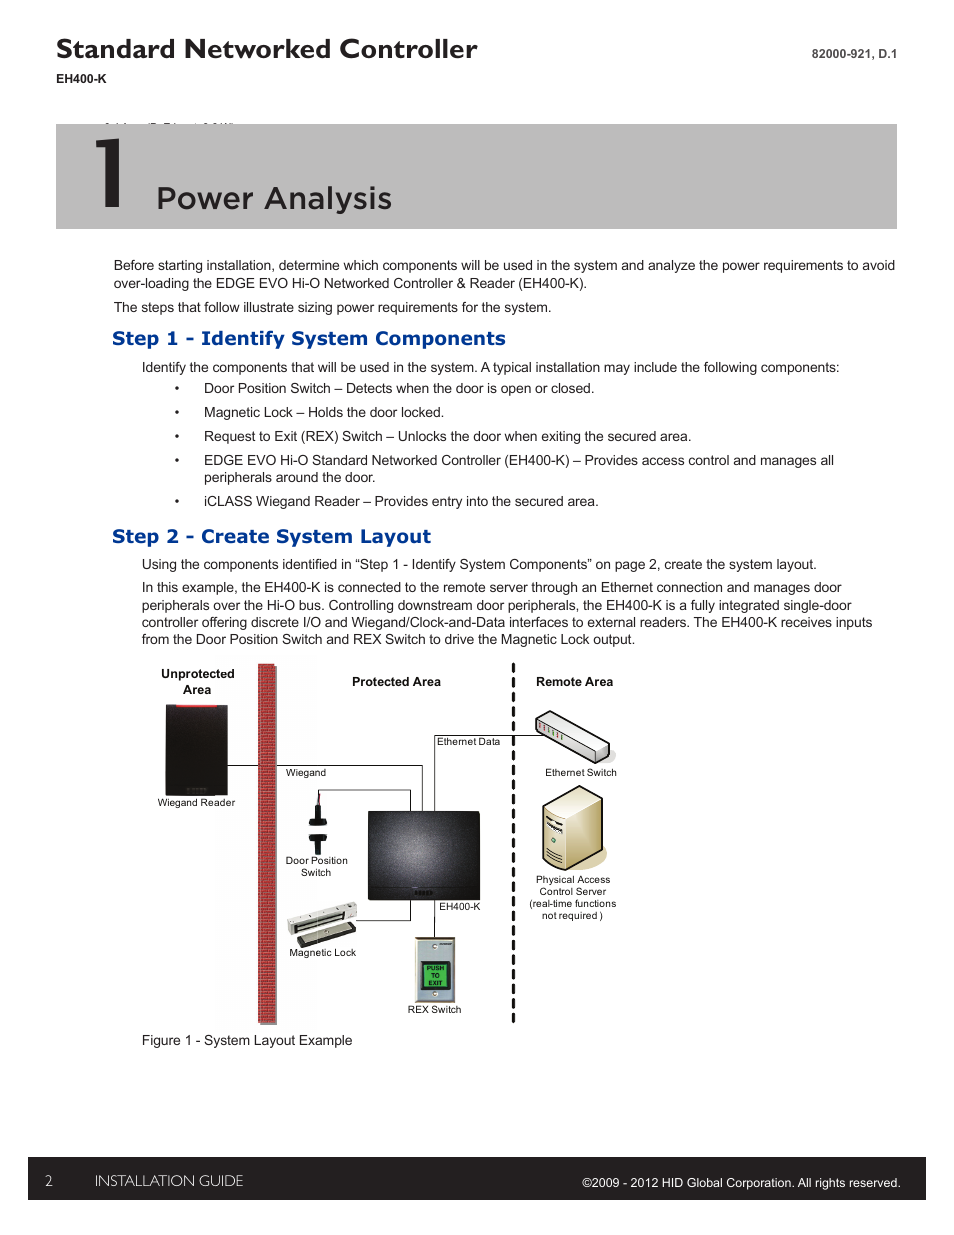 hid edge evo solo esh400 k networked controller installation guide page2 100 [ hid prox reader wiring diagram ] hid card reader wiring hid edge evo wiring diagram at bayanpartner.co